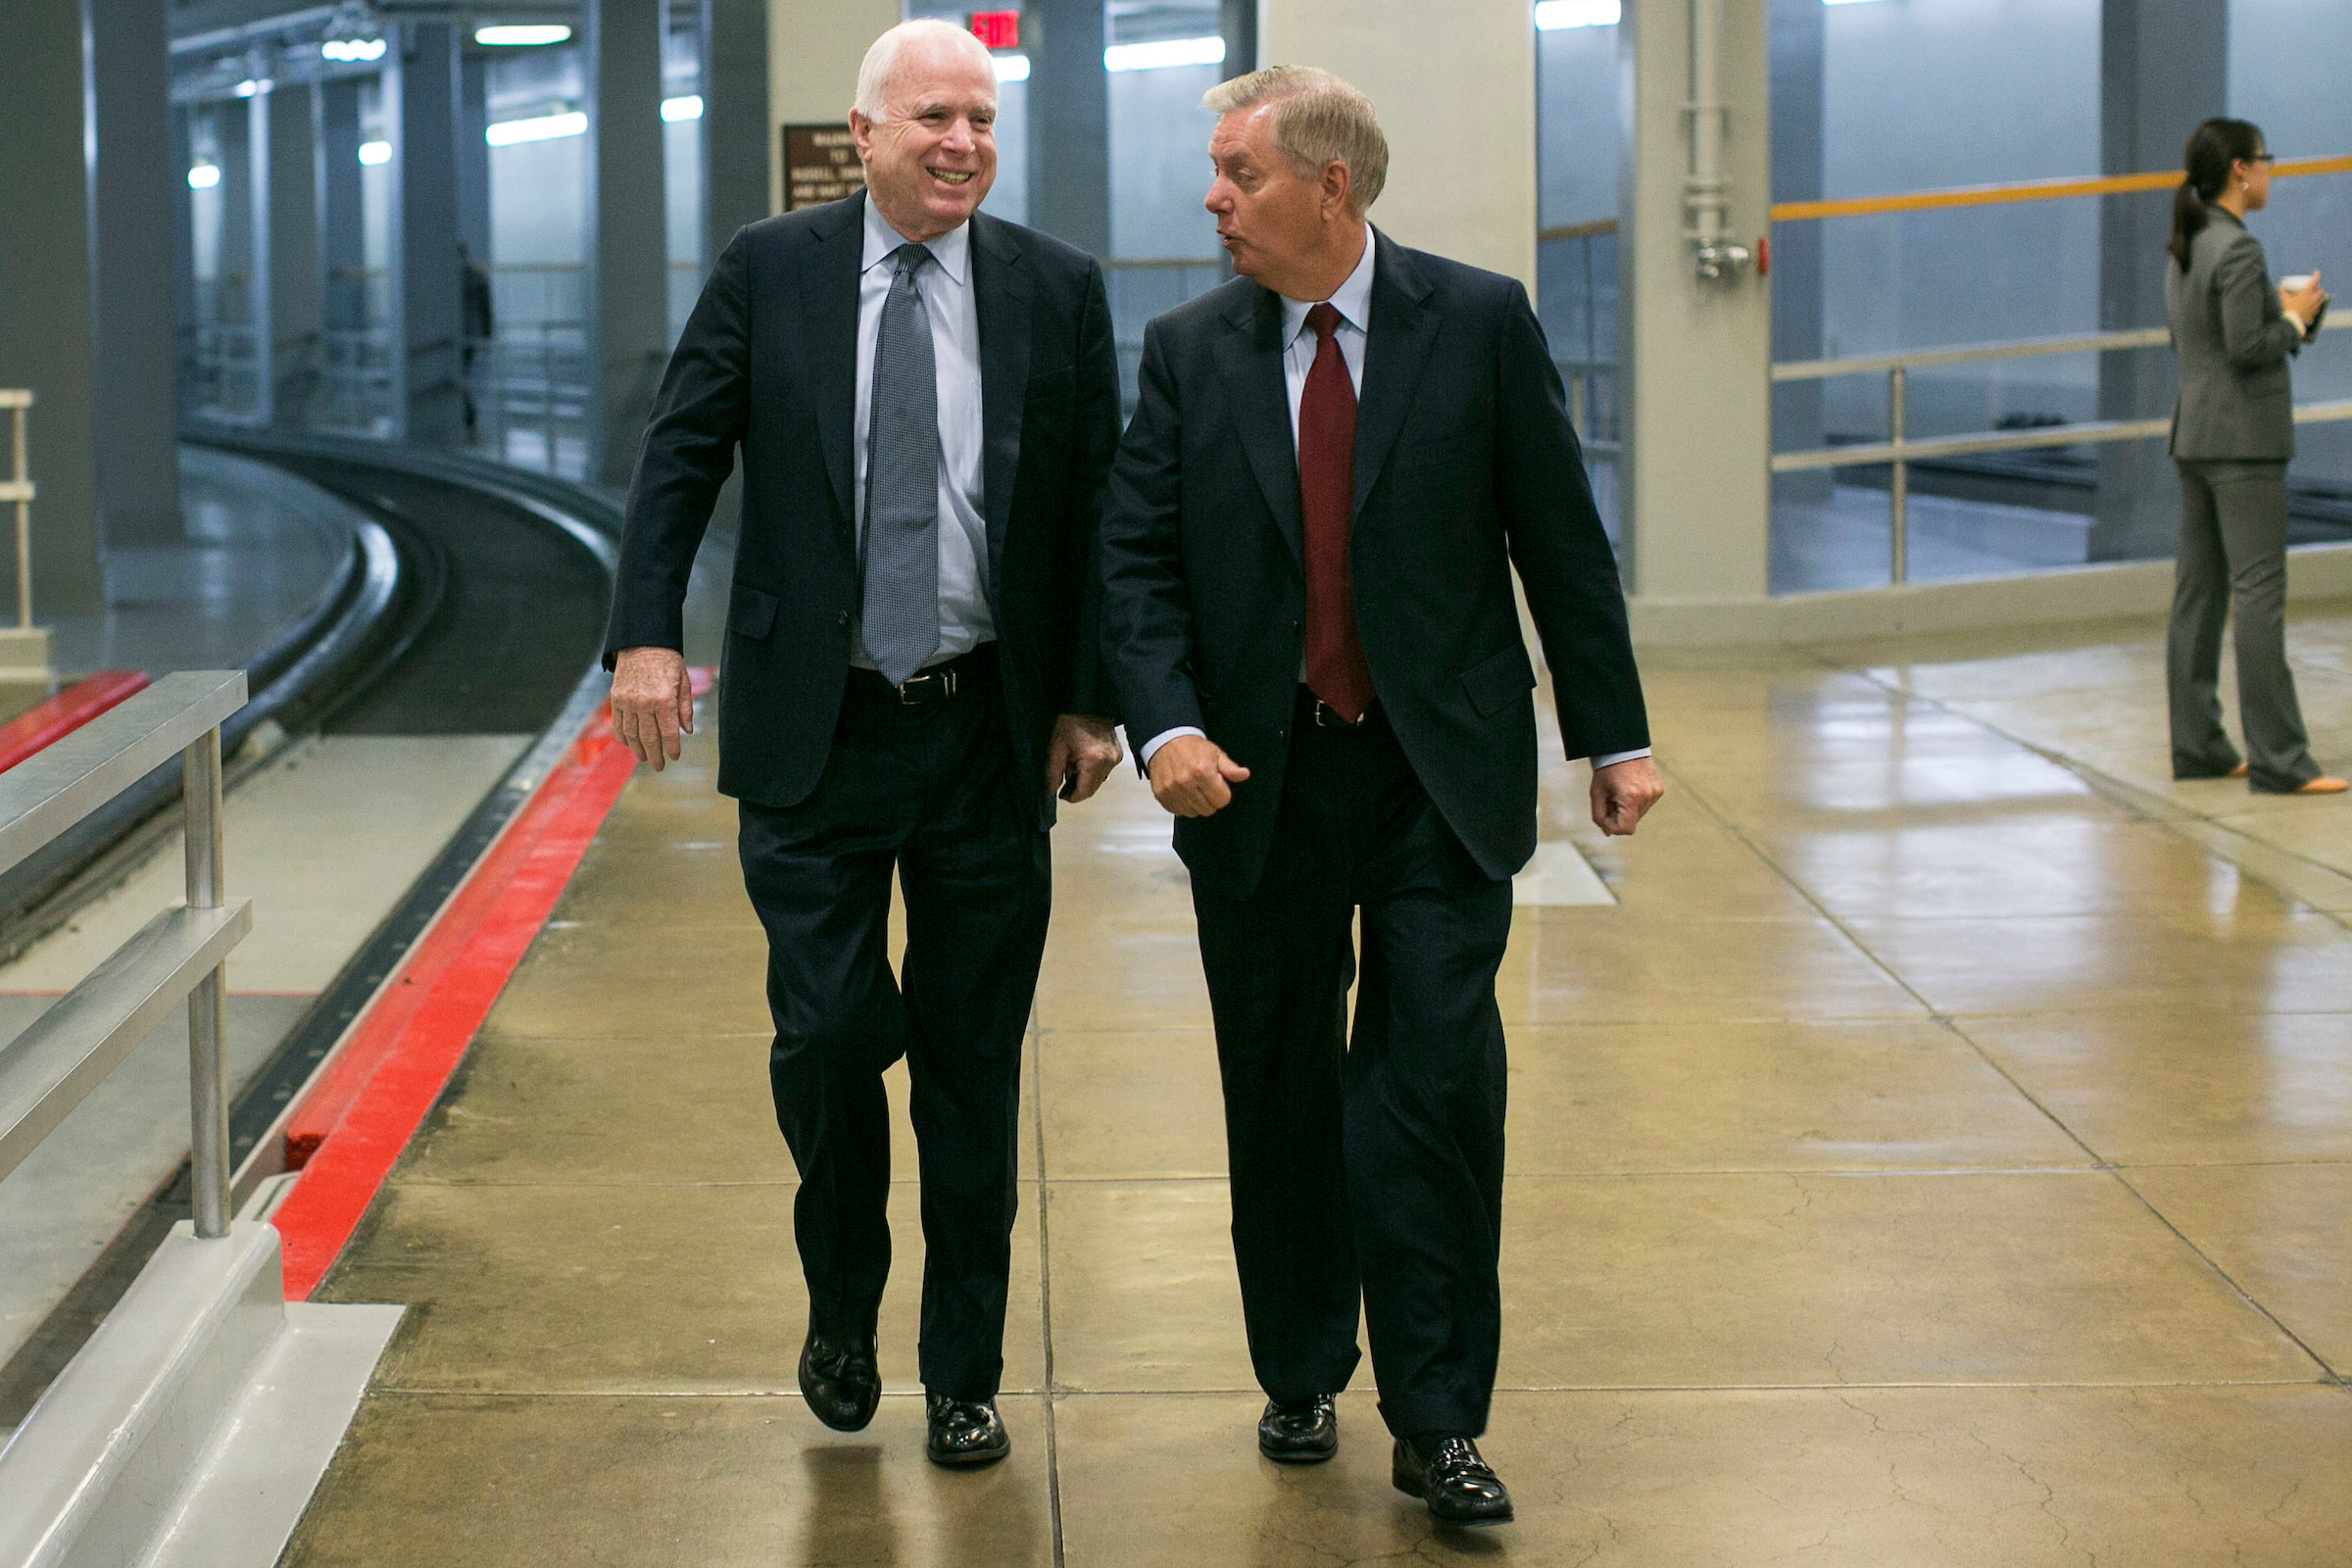 UNITED STATES - MAY 11 - Sen. John McCain, R-Ariz., and Sen. Lindsey Graham, R-S.C., joke as they arrive in the basement of the U.S. Capitol for a vote, in Washington, Wednesday, May 11, 2016. (Photo By Al Drago/CQ Roll Call)